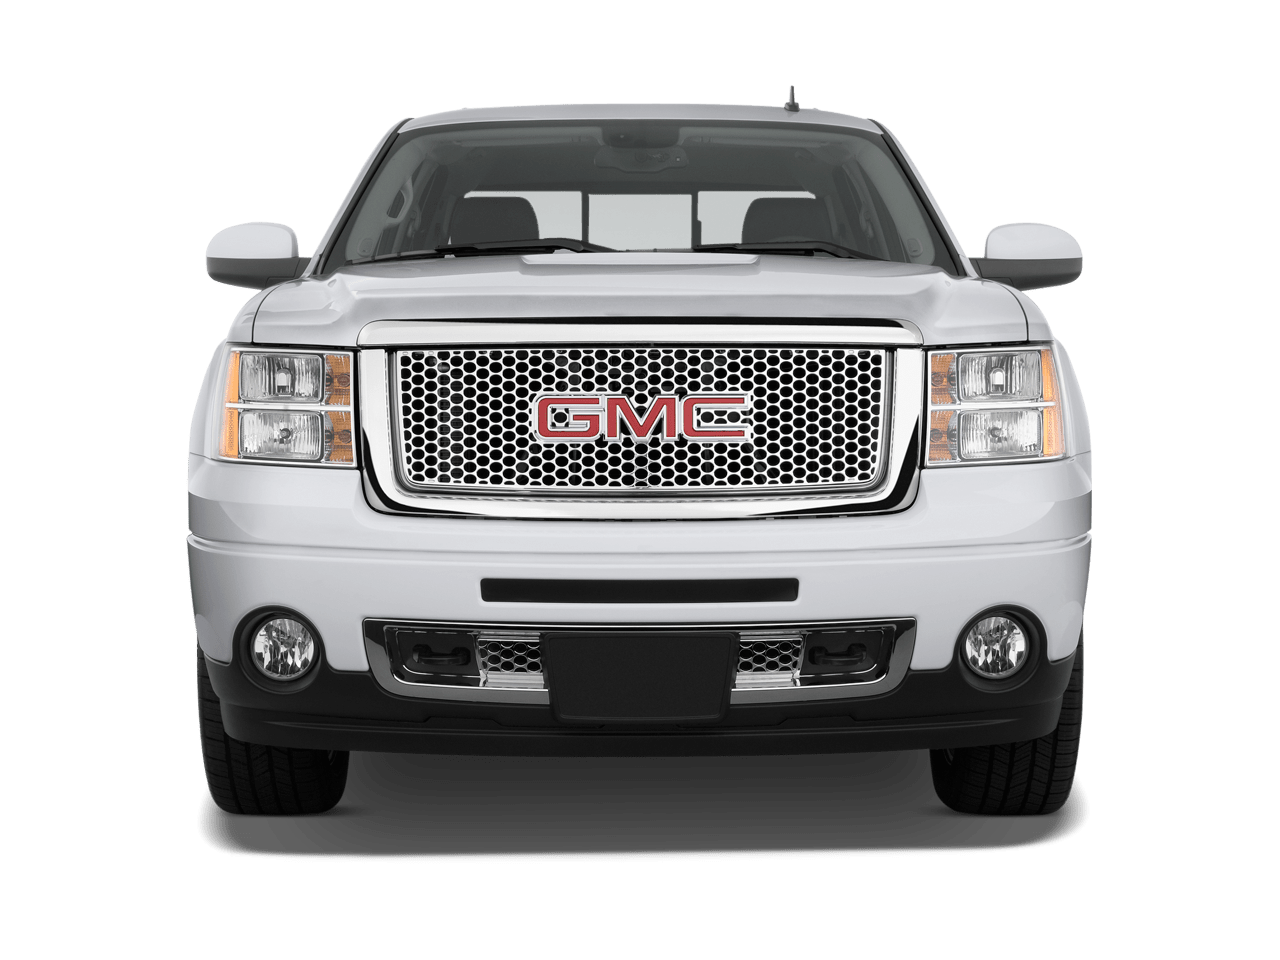 2009 GMC Sierra Reviews and Rating   Motor Trend 43   186